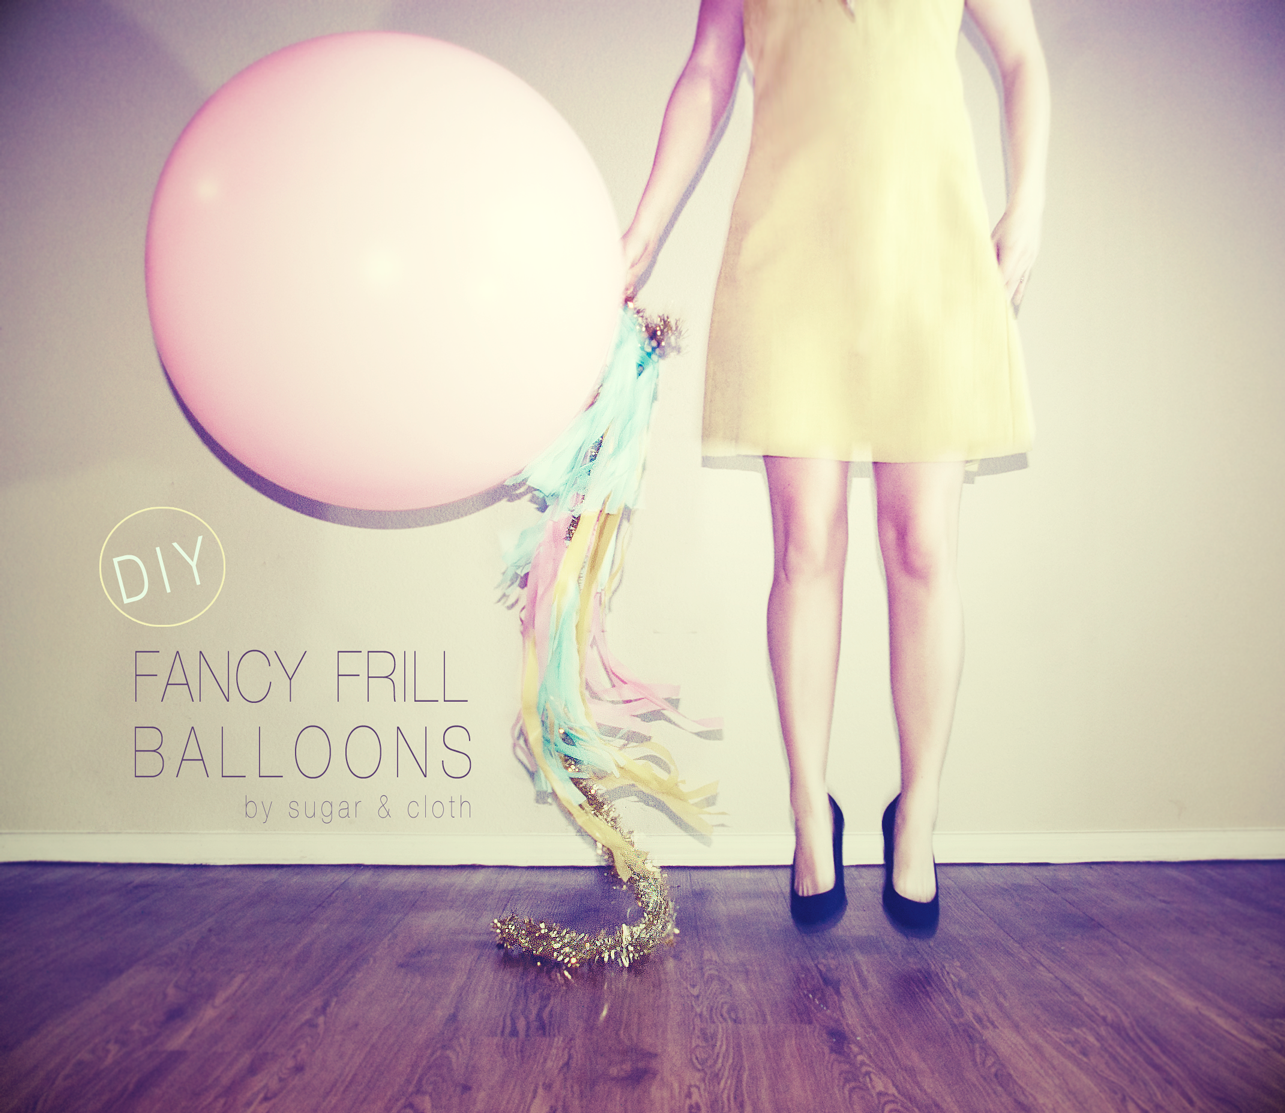 DIY geronimo balloons fancy frill